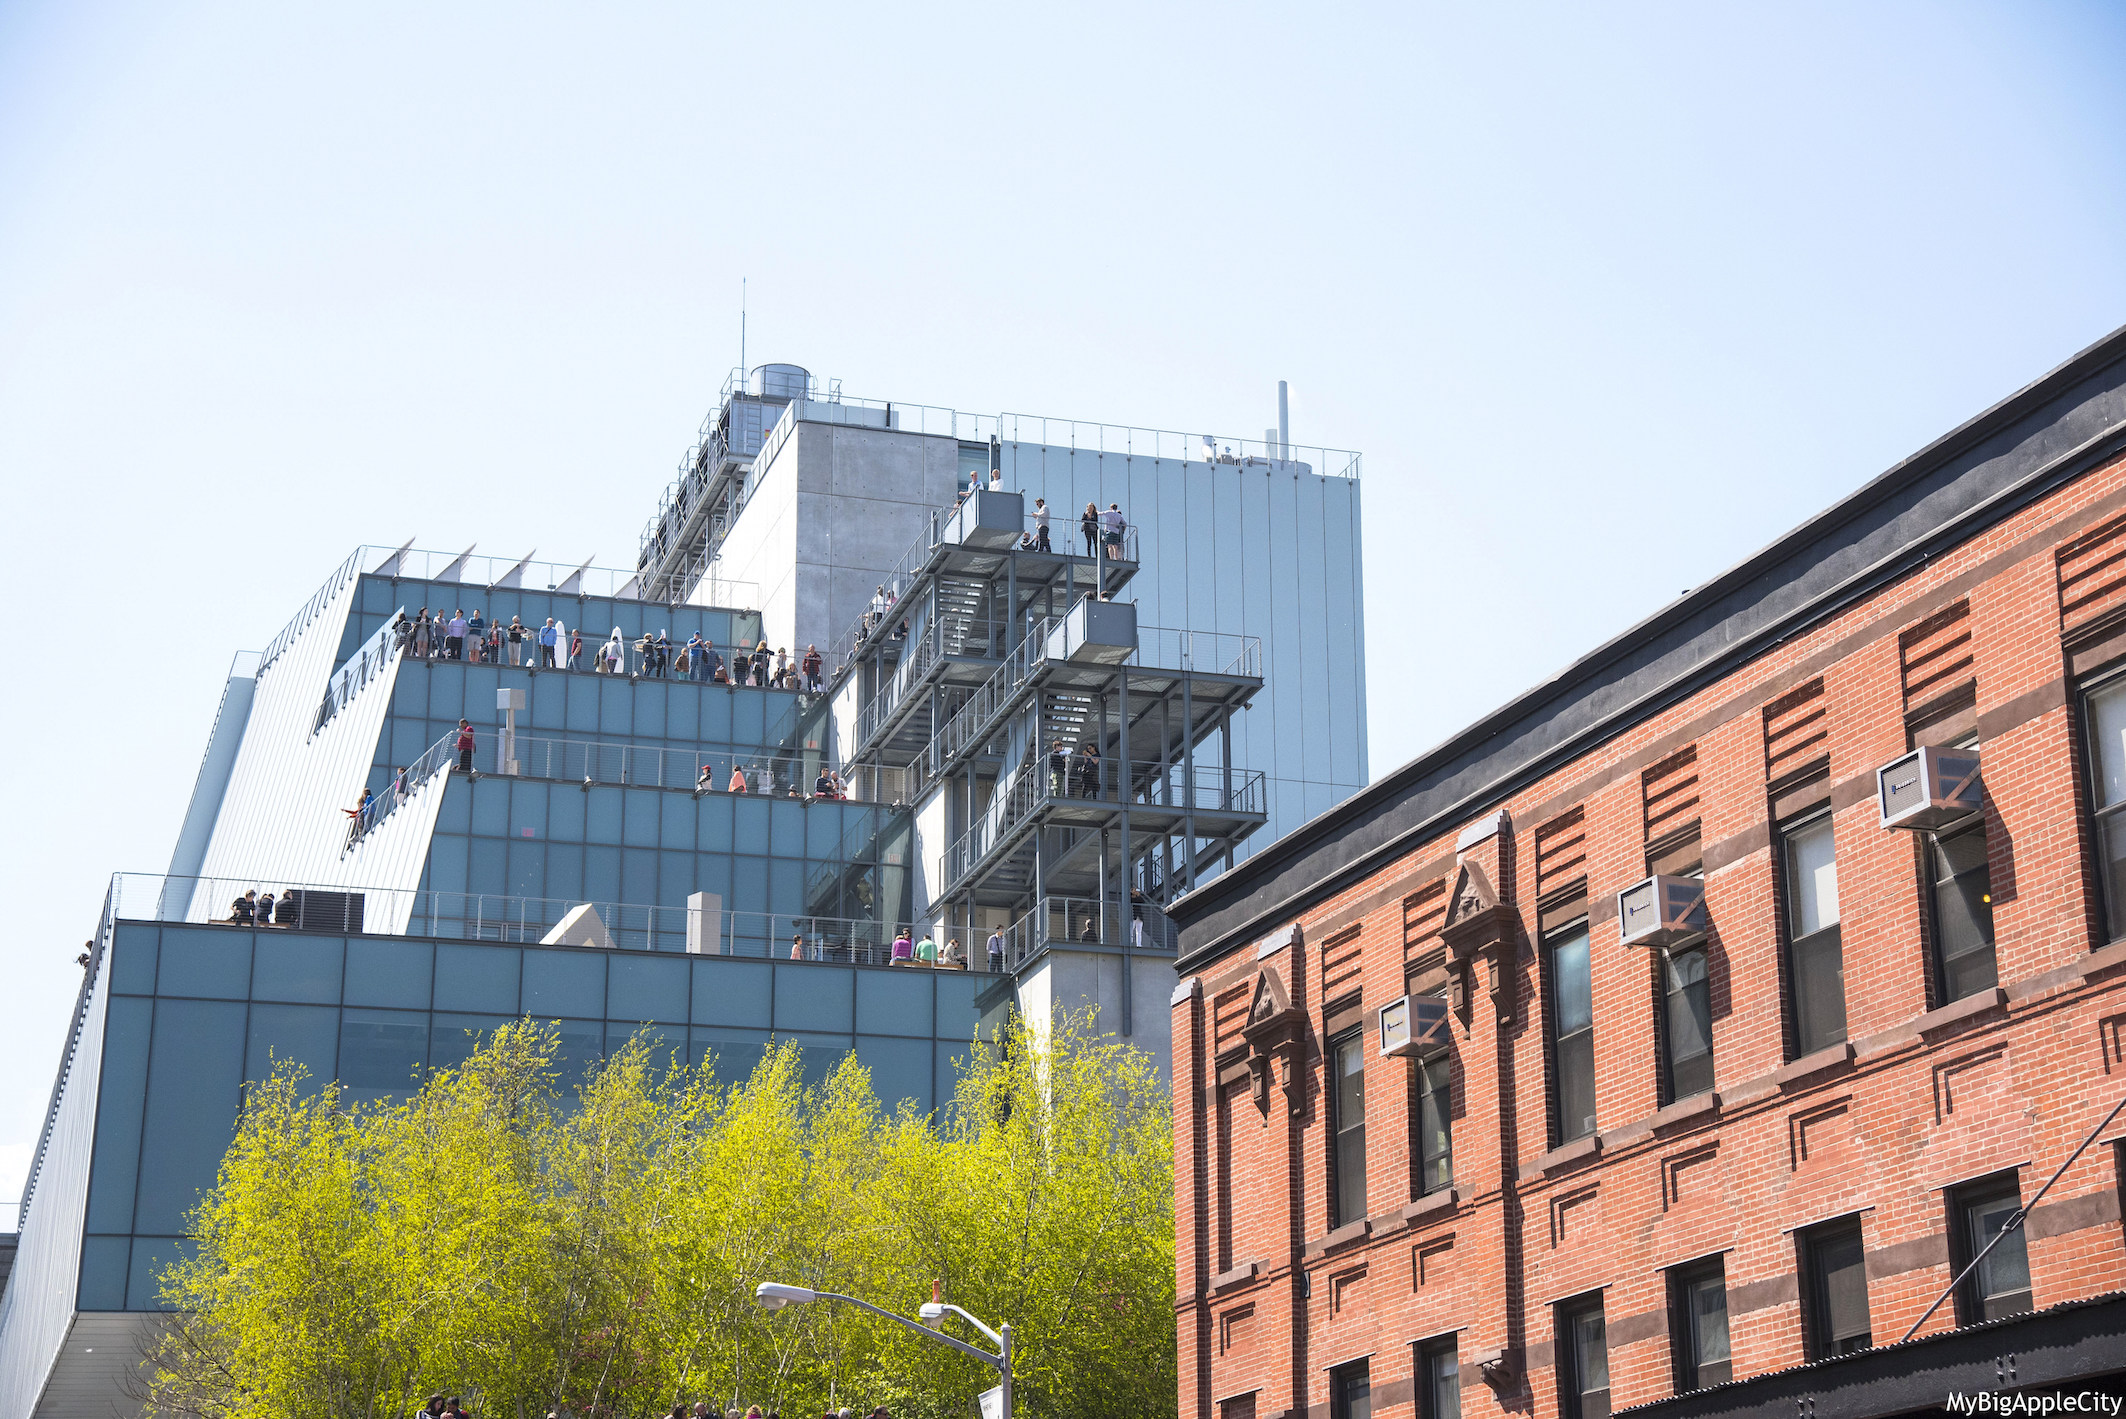 Whitney-museum-new-nyc-building-travelblog